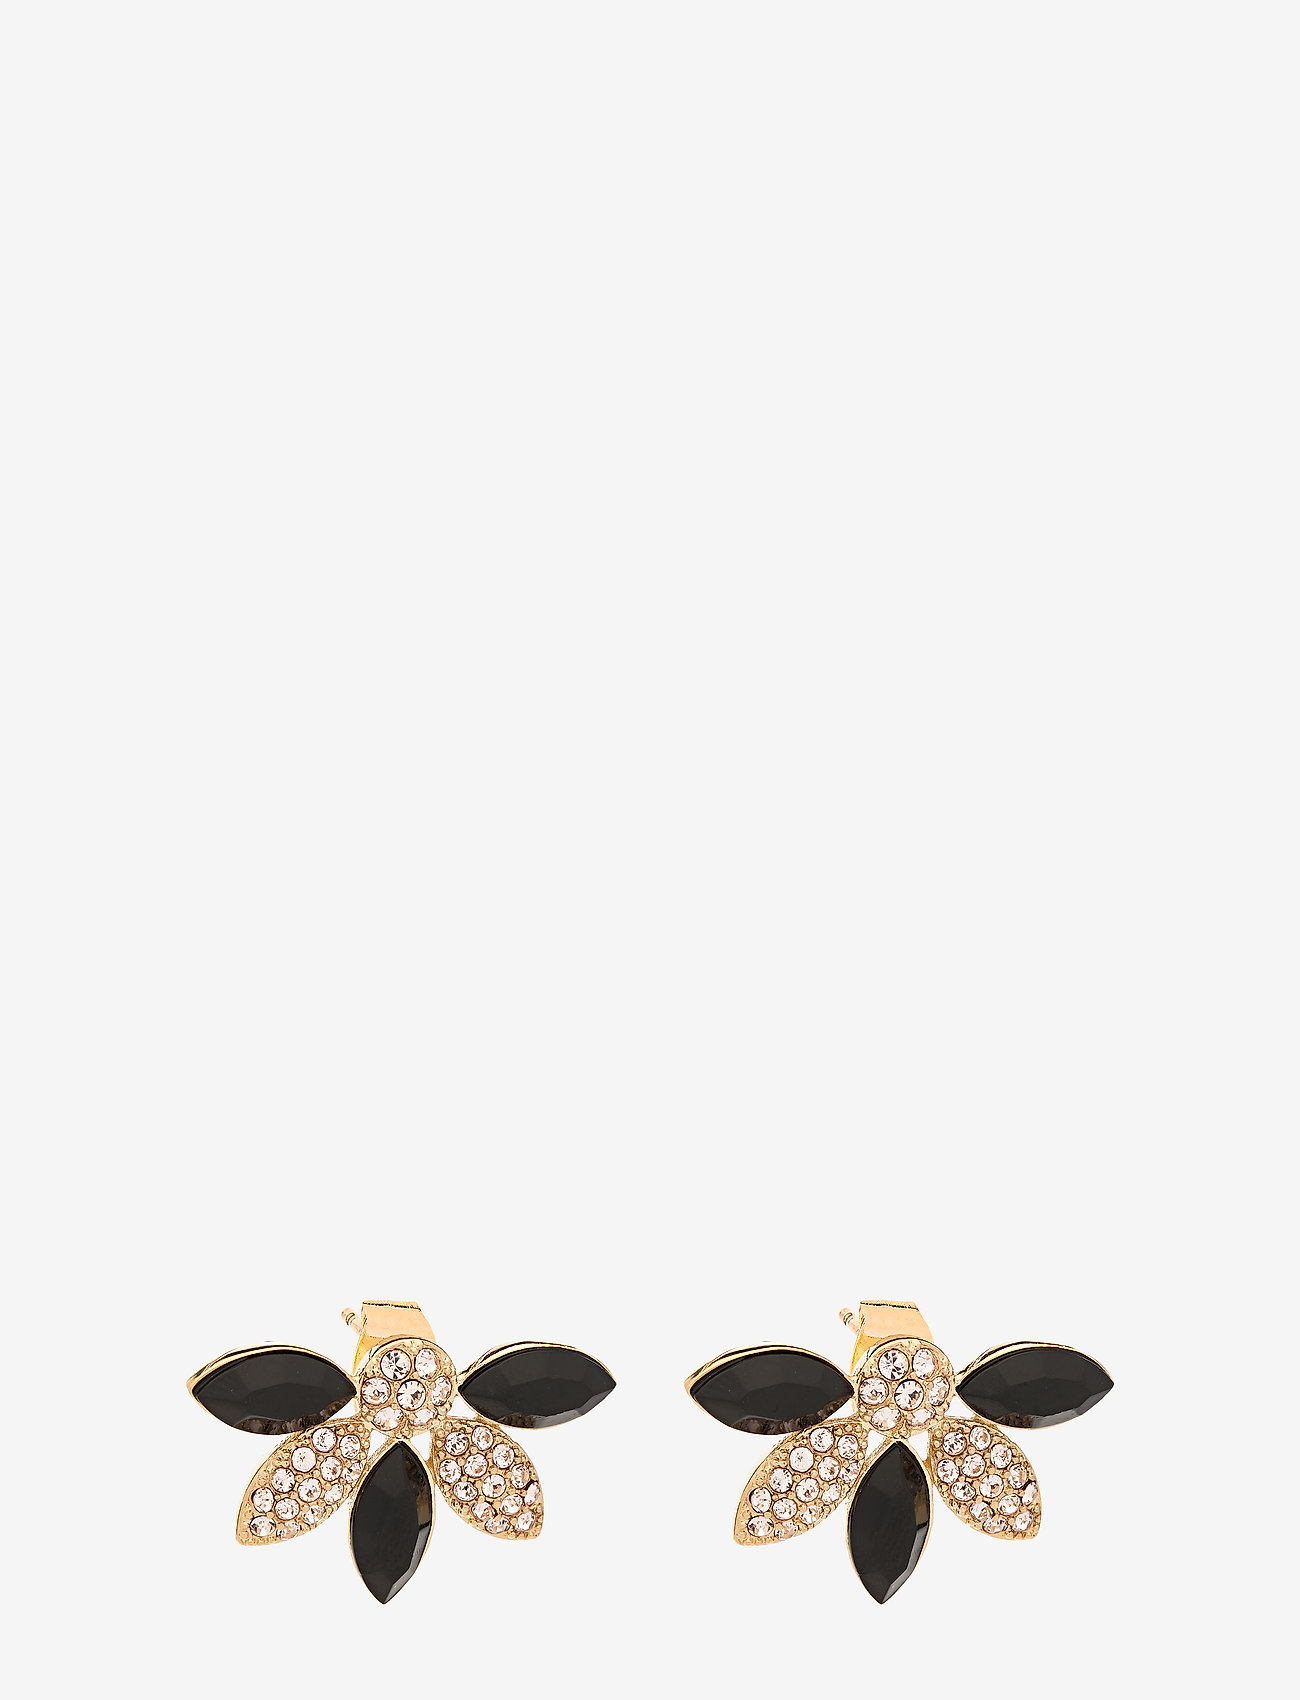 LILY AND ROSE - Lucia earrings - Jet - studs - jet